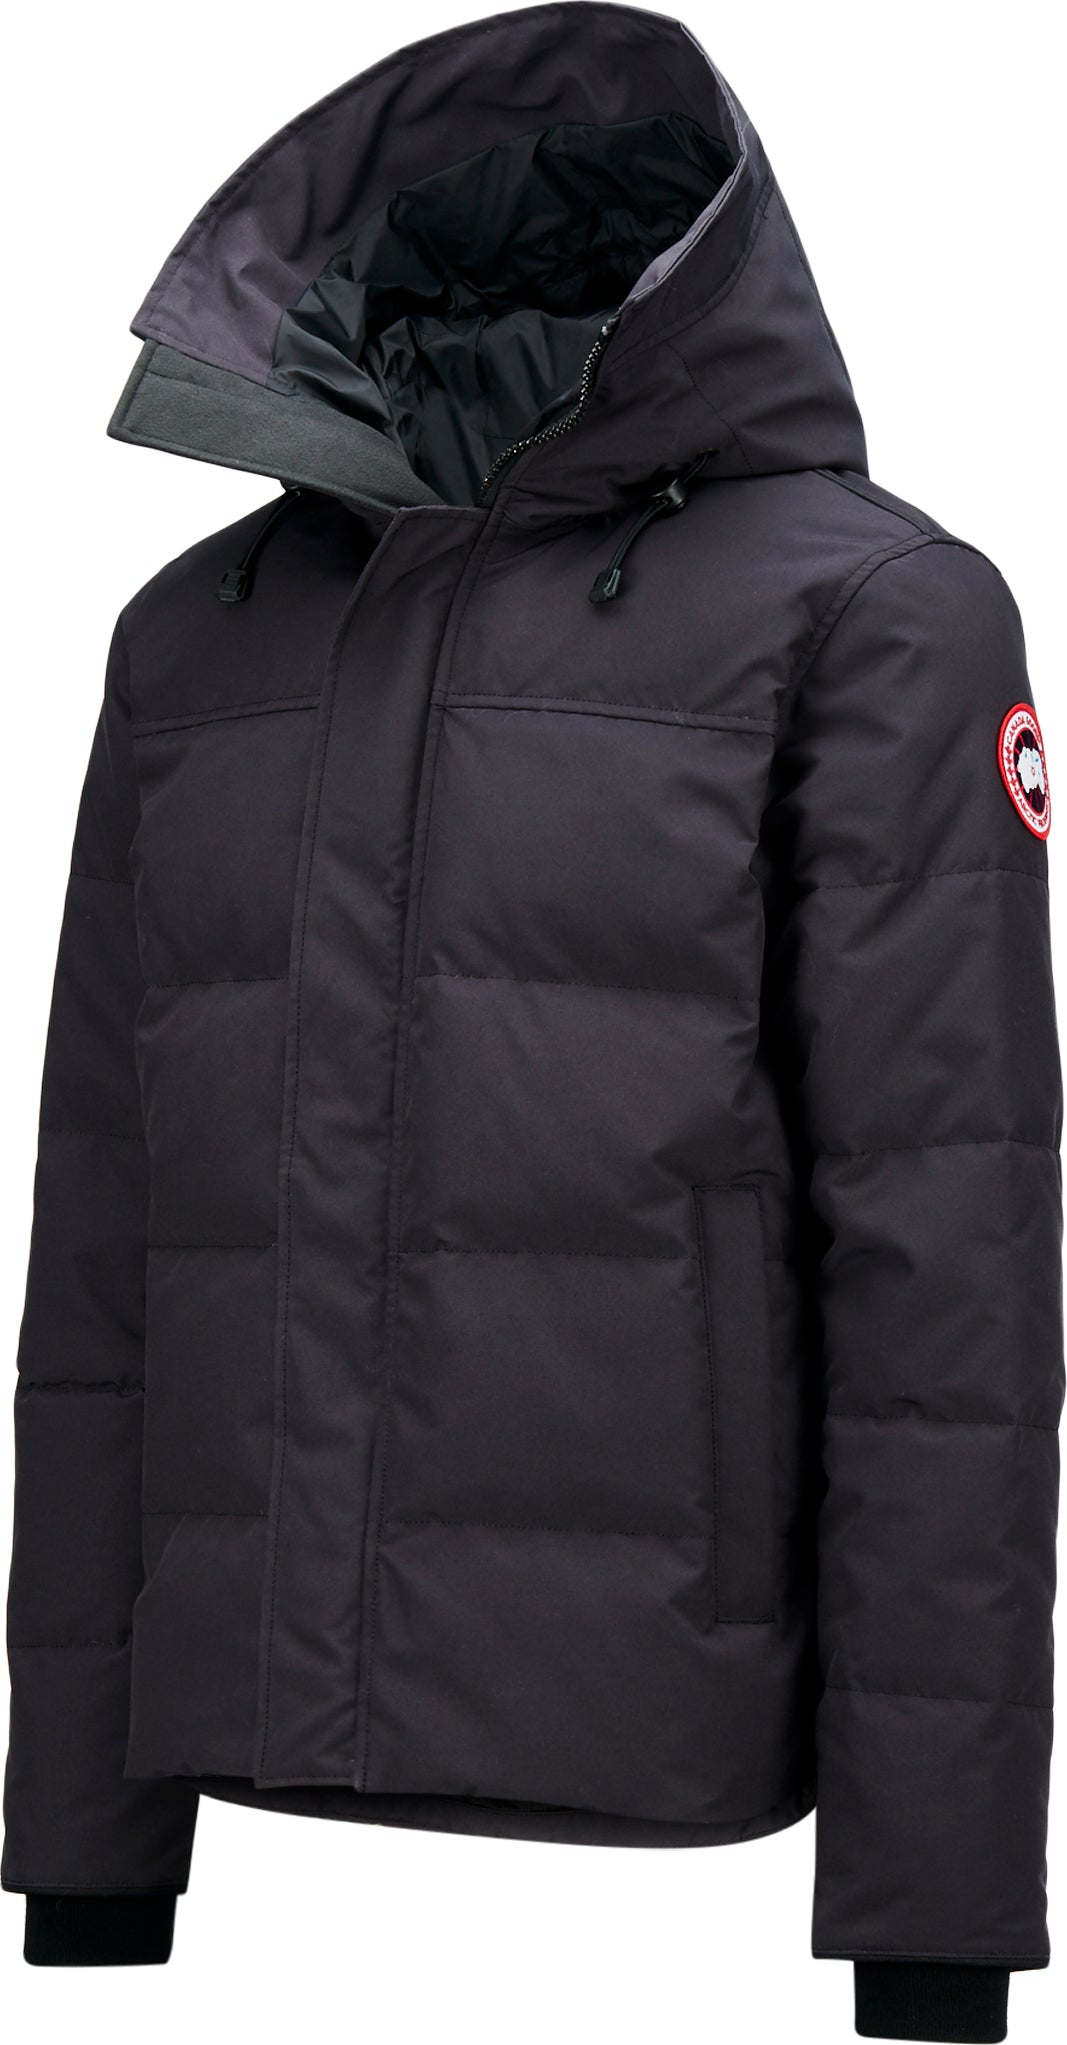 wholesale dealer a0275 3d0d7 Canada Goose MacMillan Parka - Men's